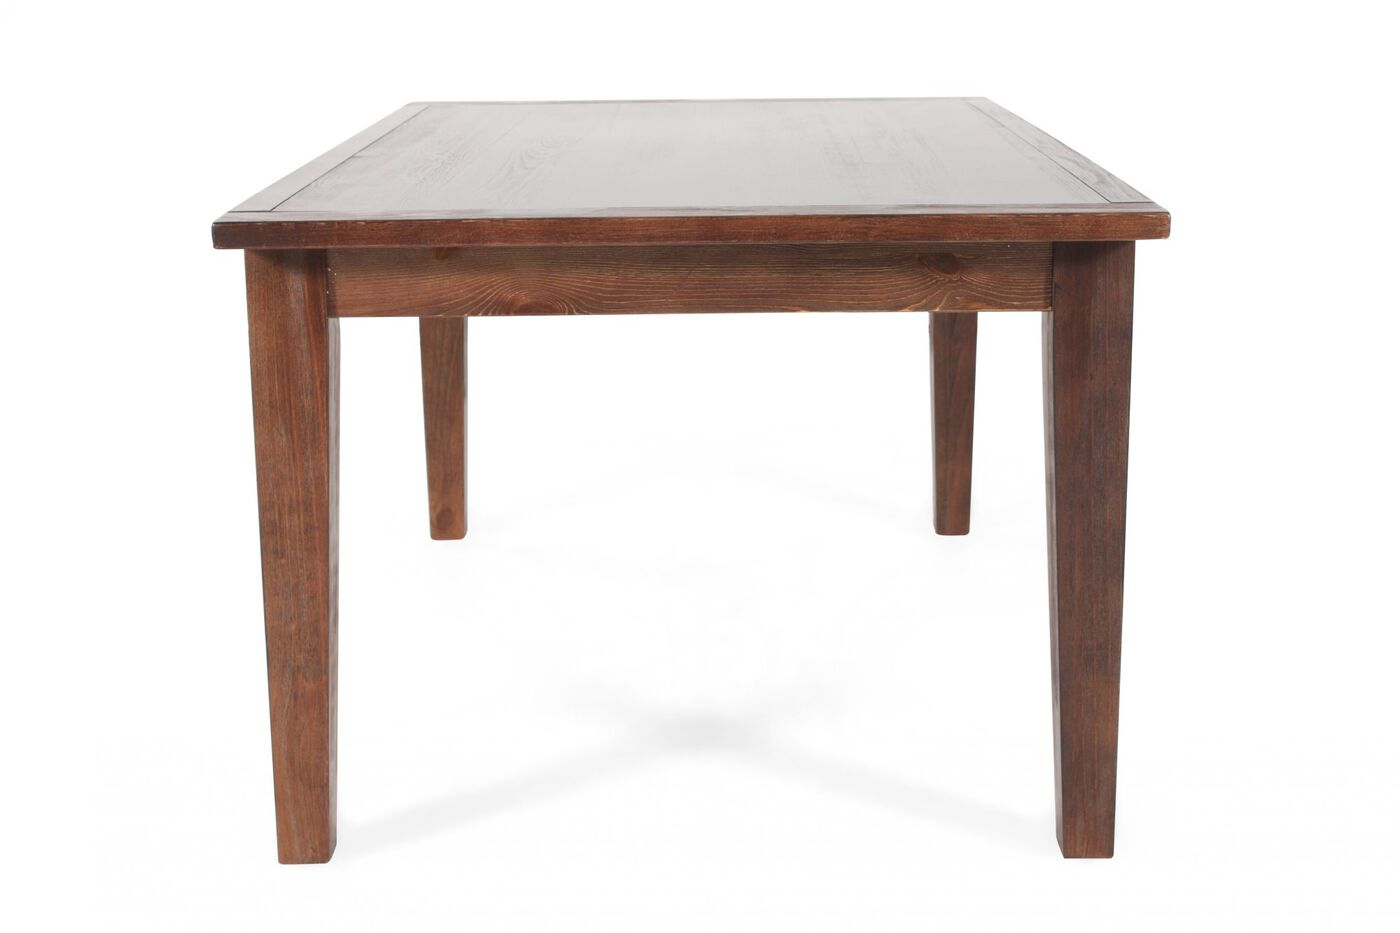 Casual 68 plank top dining table in natural brown for Informal dining table